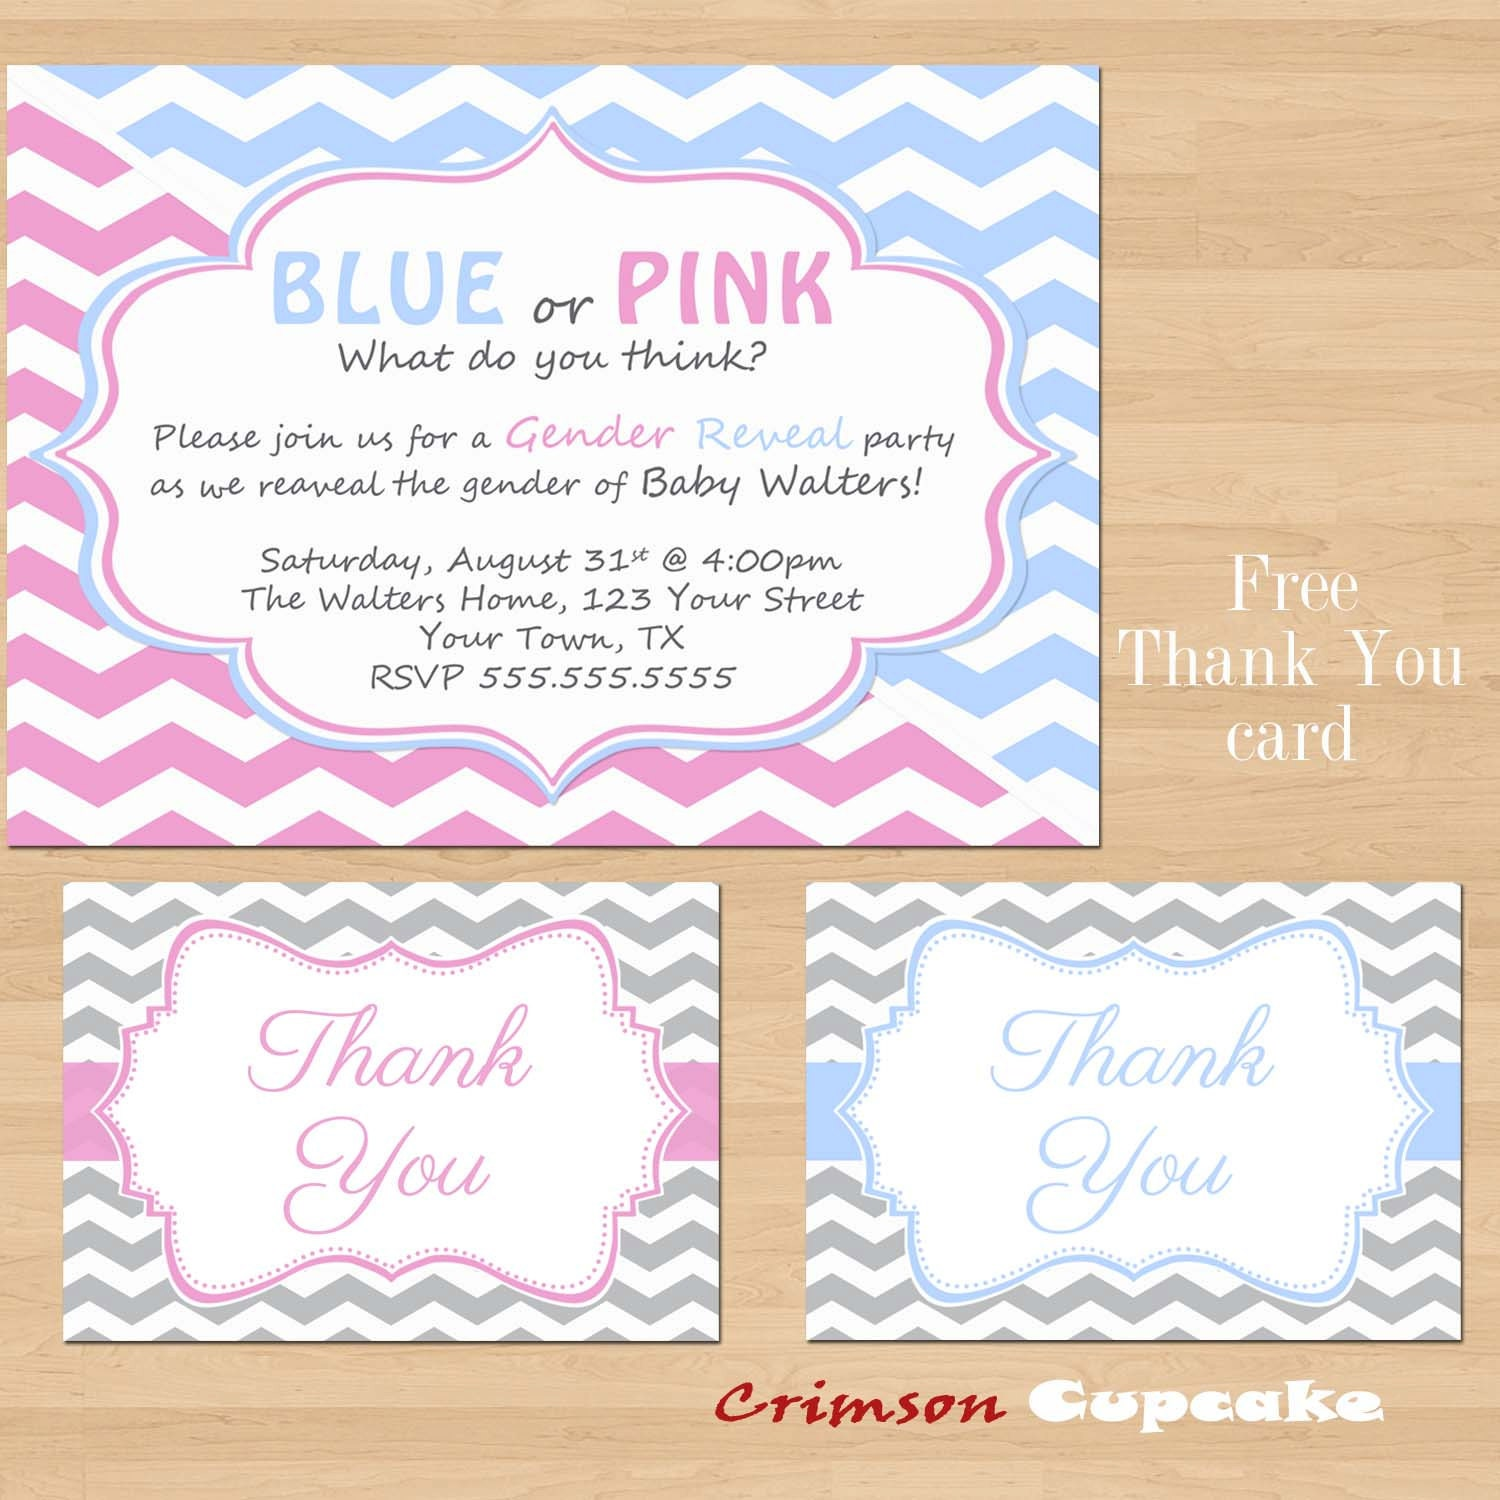 Free Printable Gender Reveal Party Invitations is one of our best ideas you might choose for invitation design